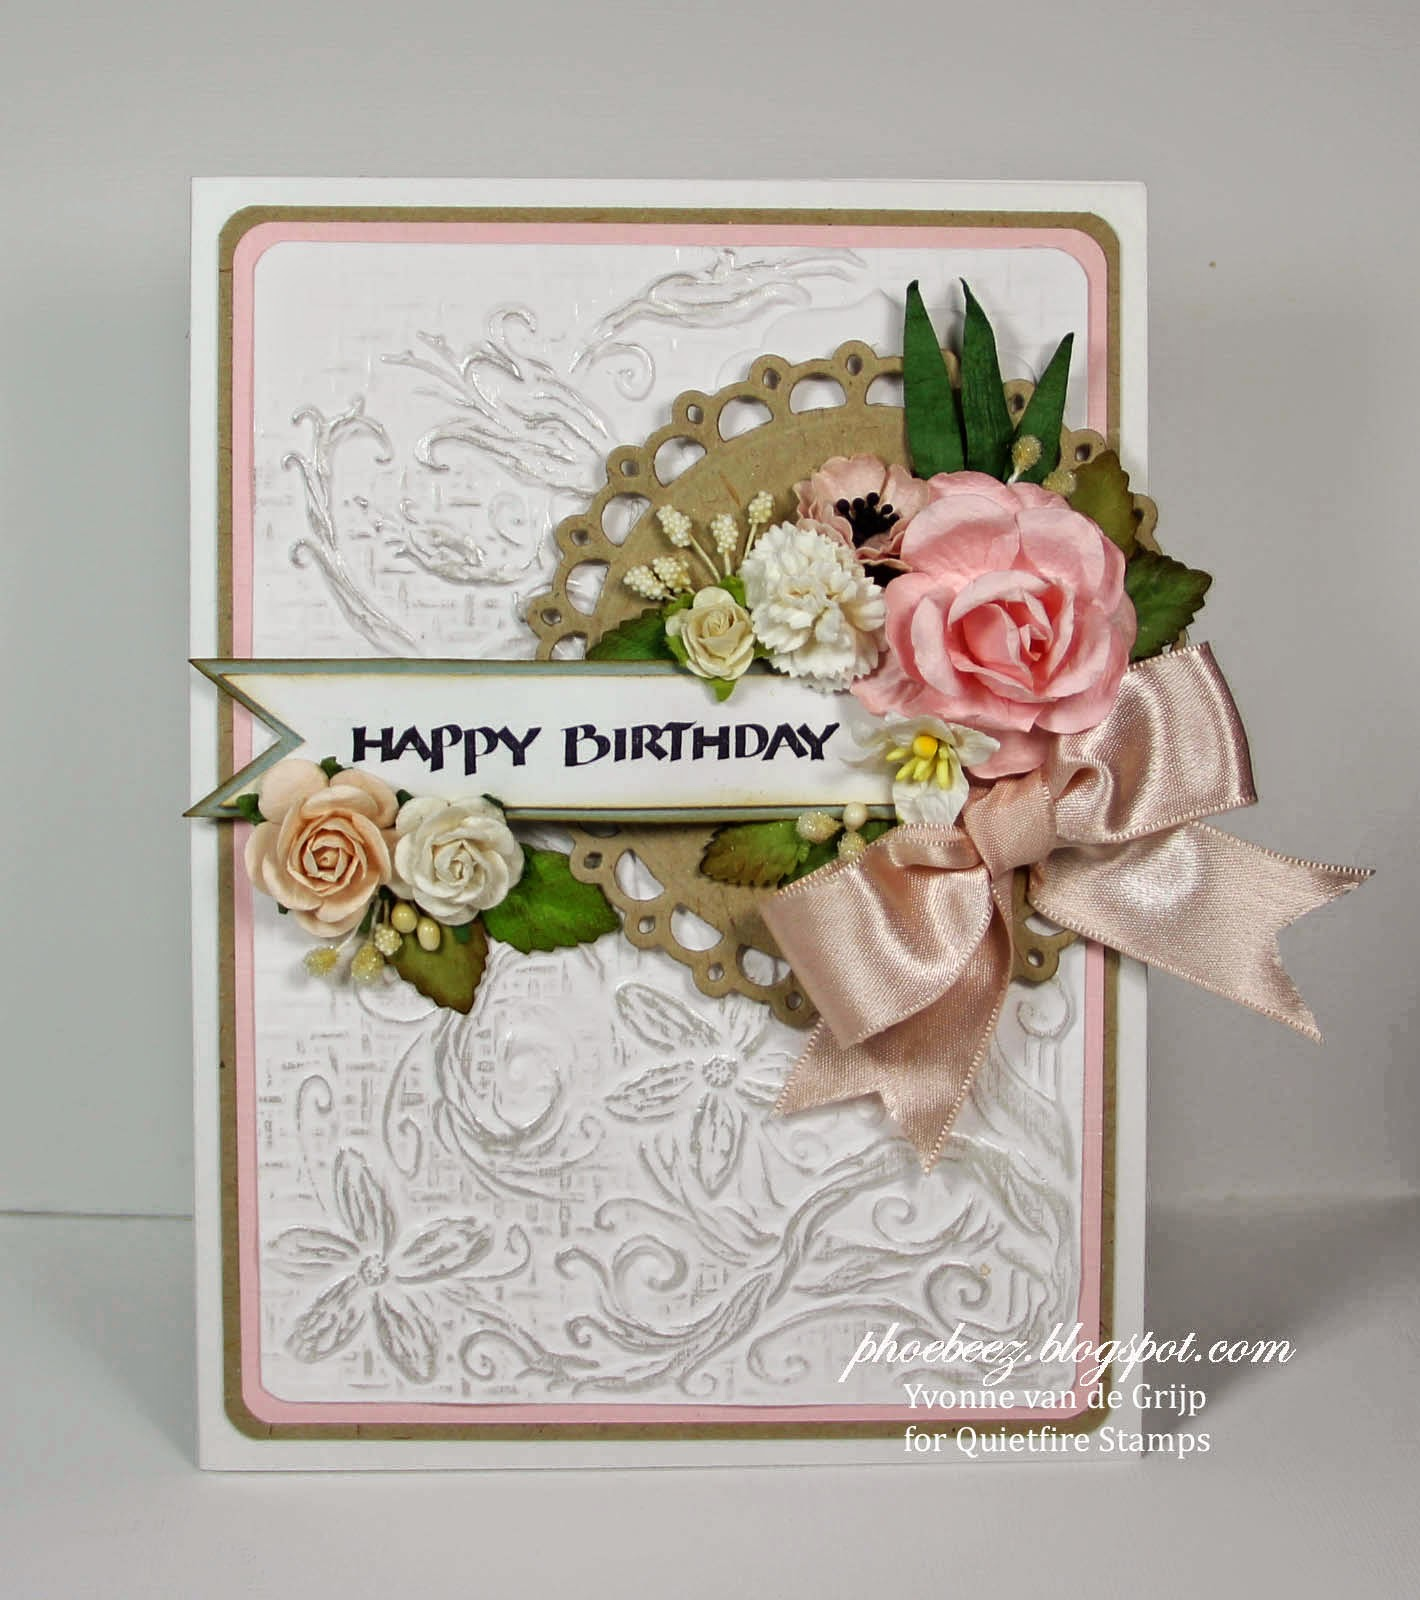 Quietfire creations happy birthday card today im sharing with you a romantic birthday card with the happy birthday plain simple sku 5899 set in combination with some spellbinders dies izmirmasajfo